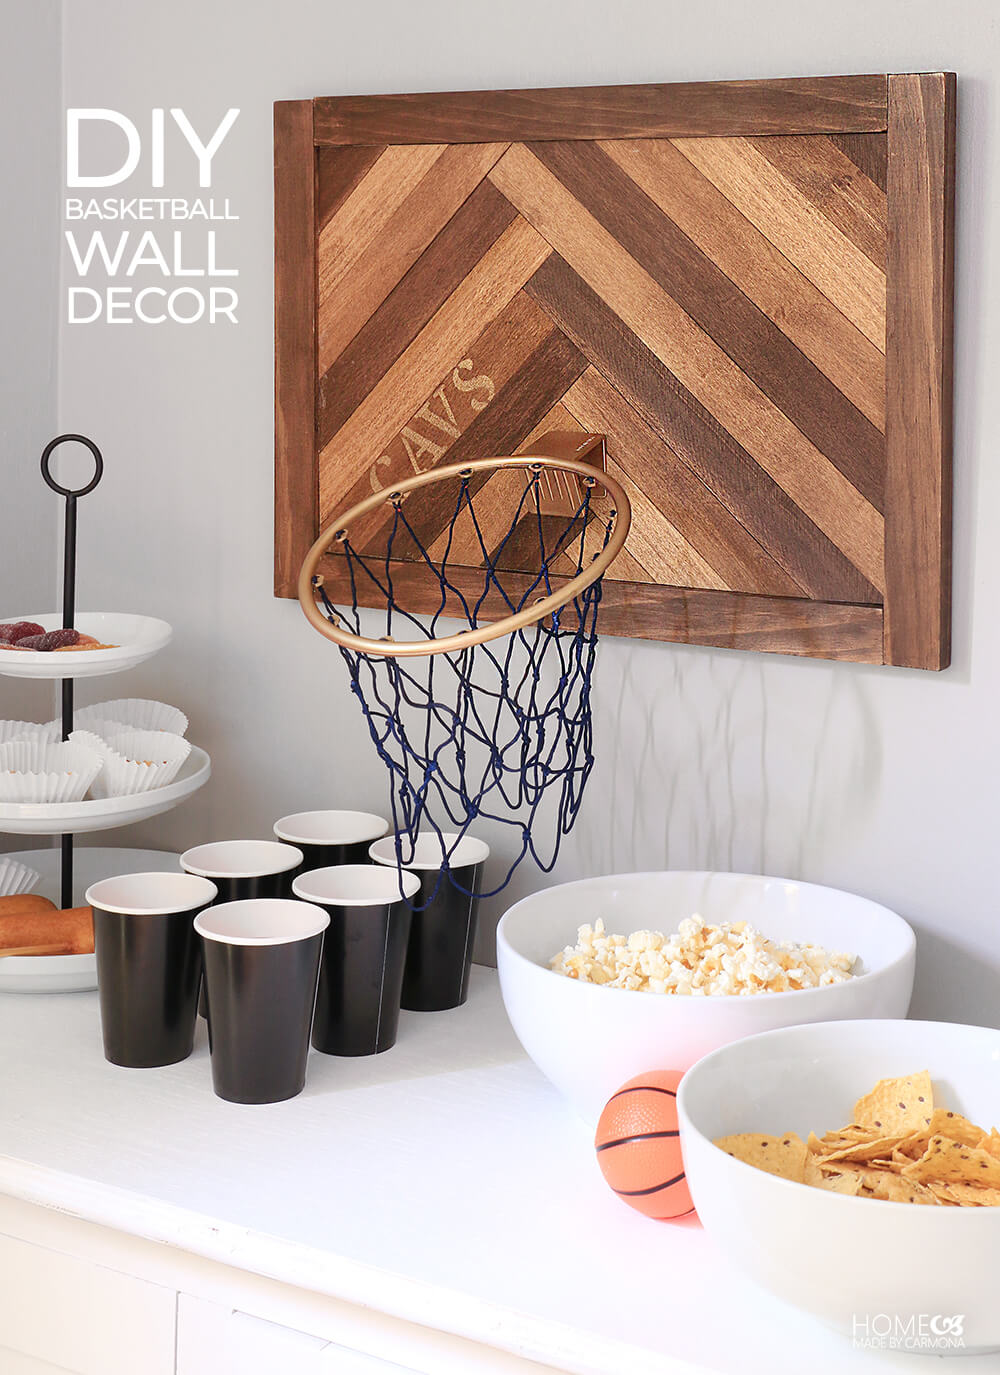 DIY-Basketball-Wall-Decor